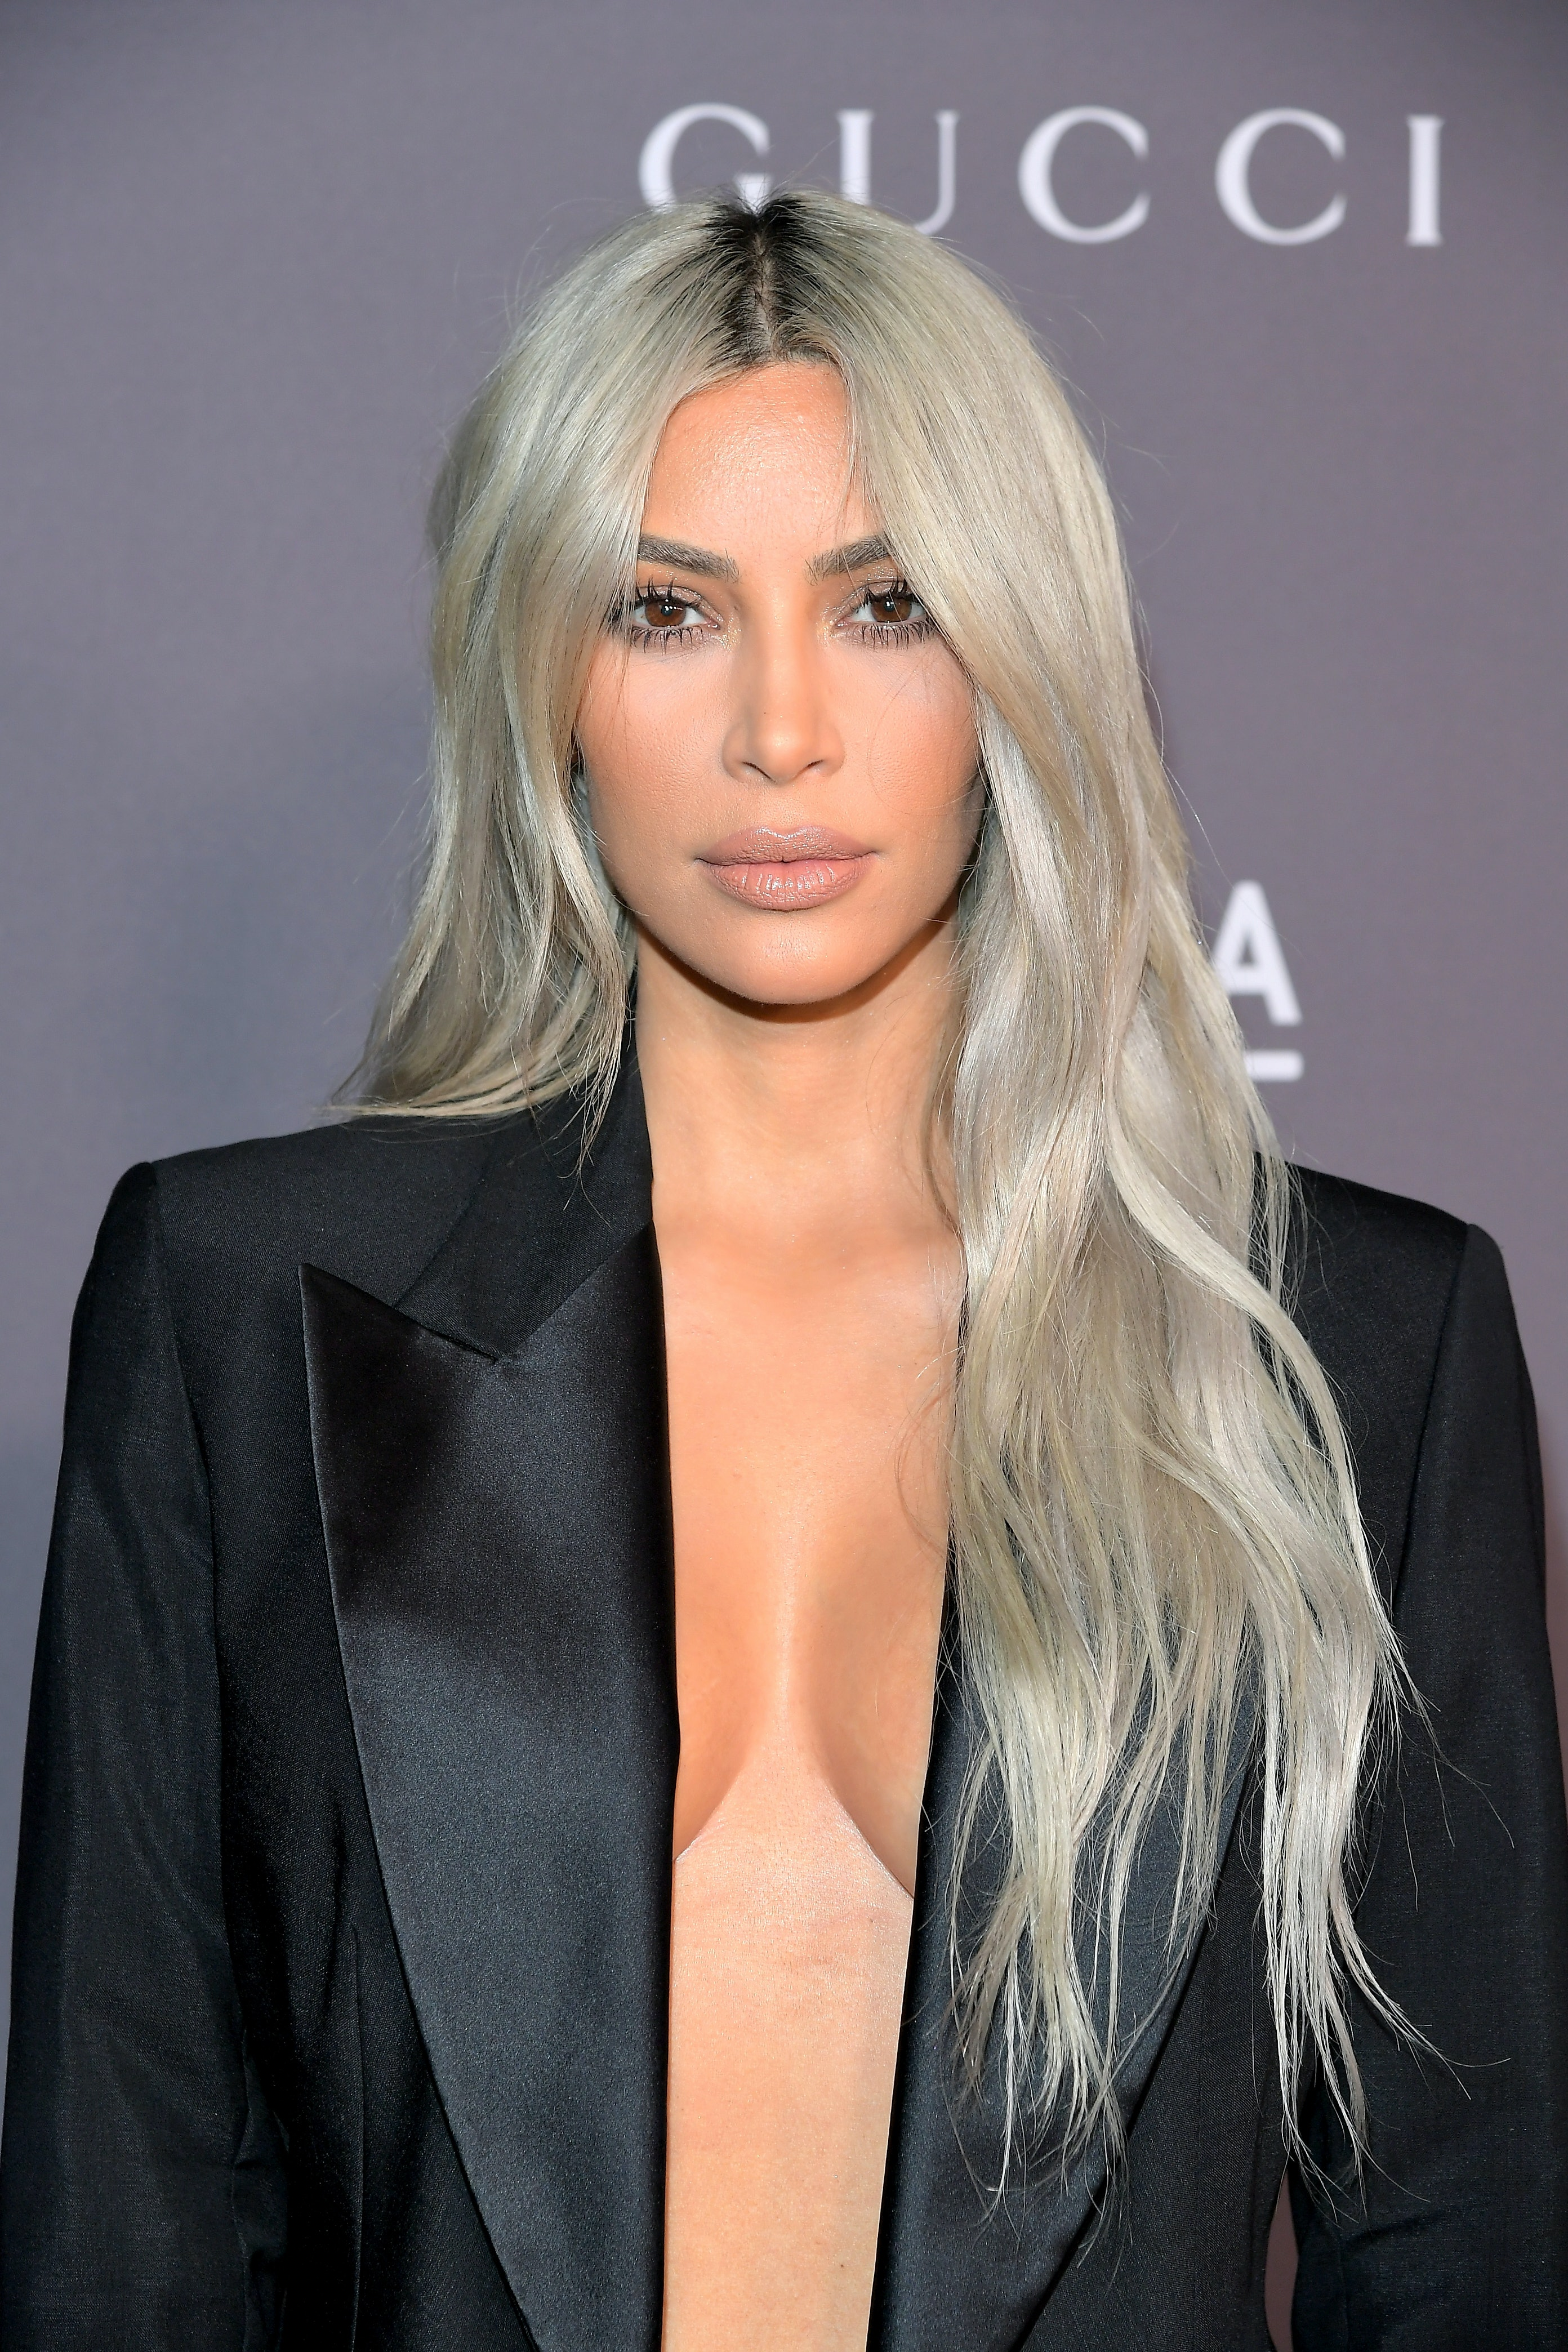 How Did Kim Kardashian Get Her Hair So Blonde Star Reveals The